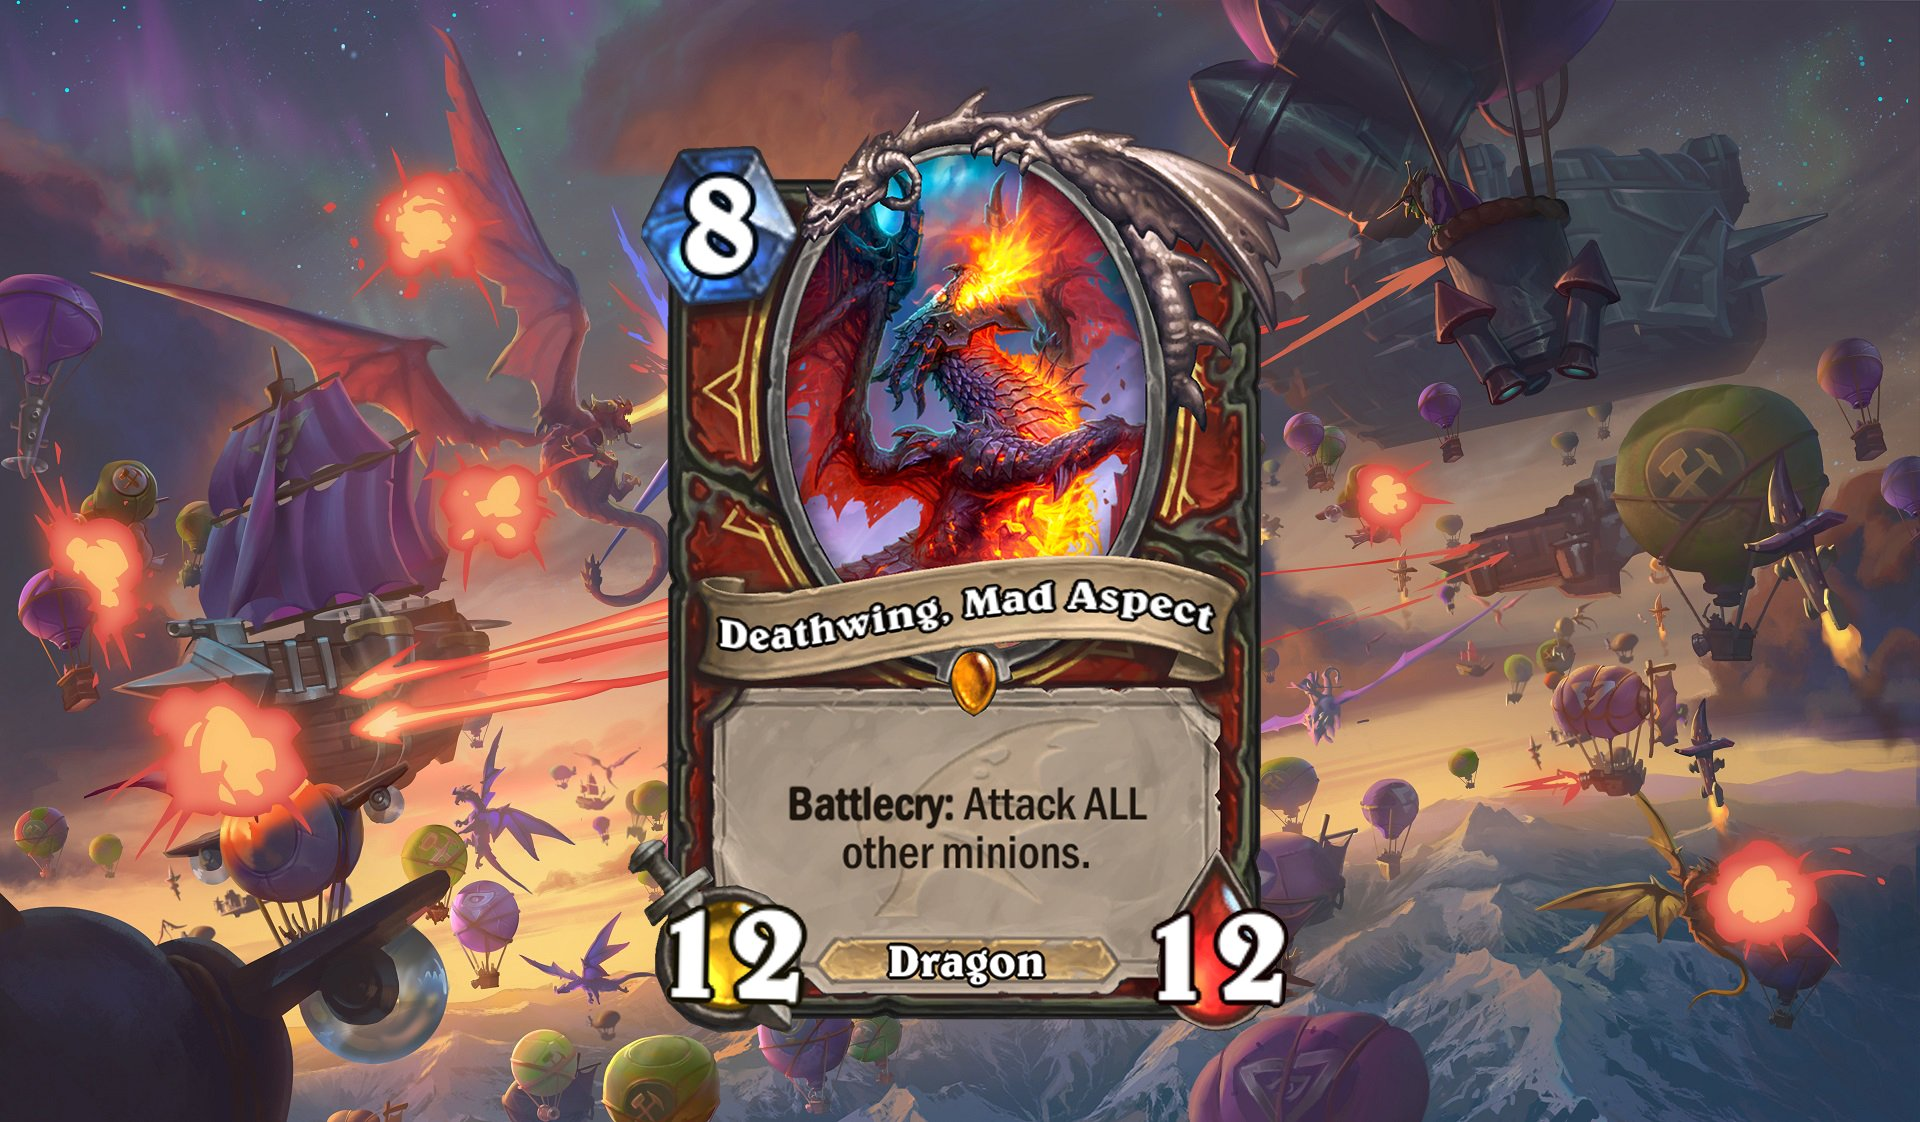 Deathwing Mad Aspect